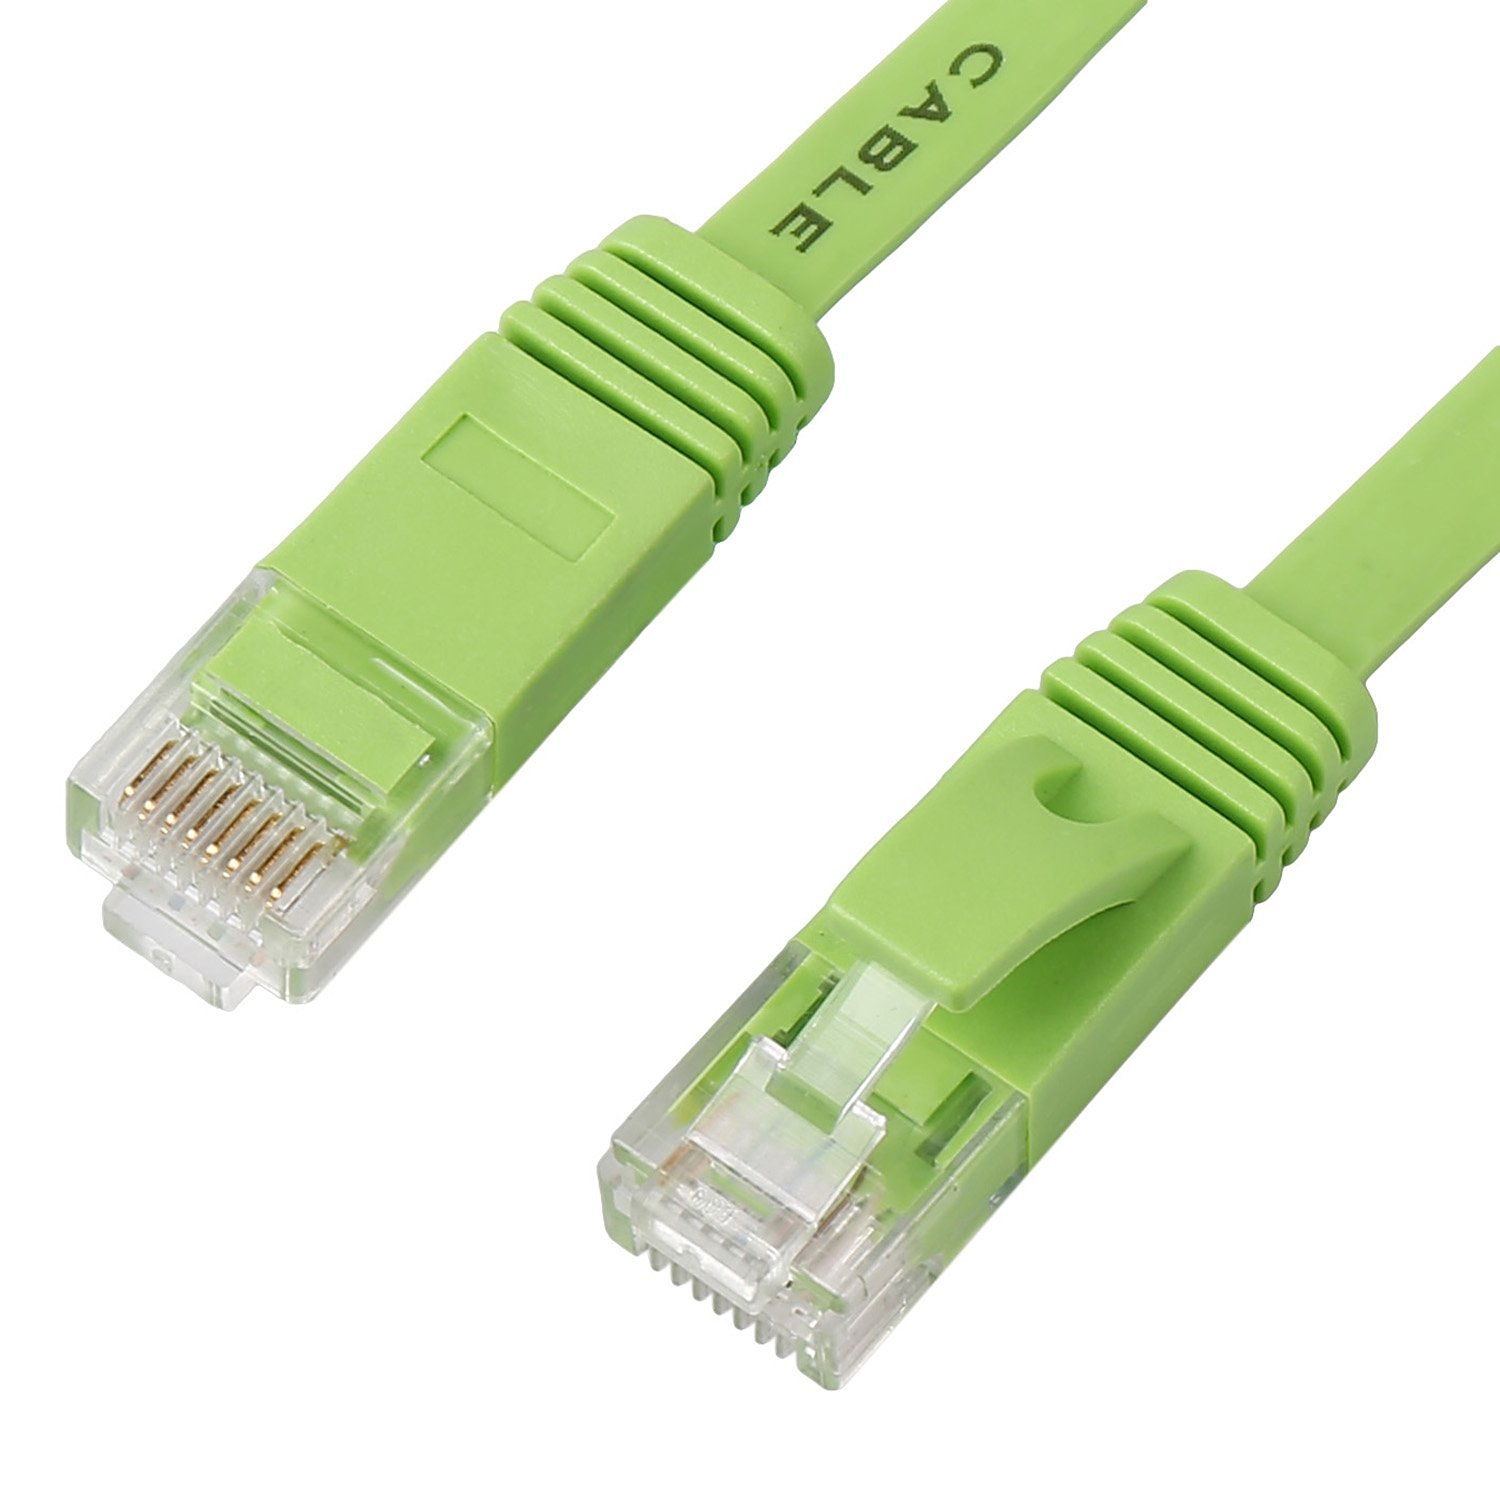 Ethernet Cable, Flat Cat6 Network Cable Gigabit Ethernet Patch Cord RJ45 Network Twisted Pair Lan Cable (33Feet/10M, Green)